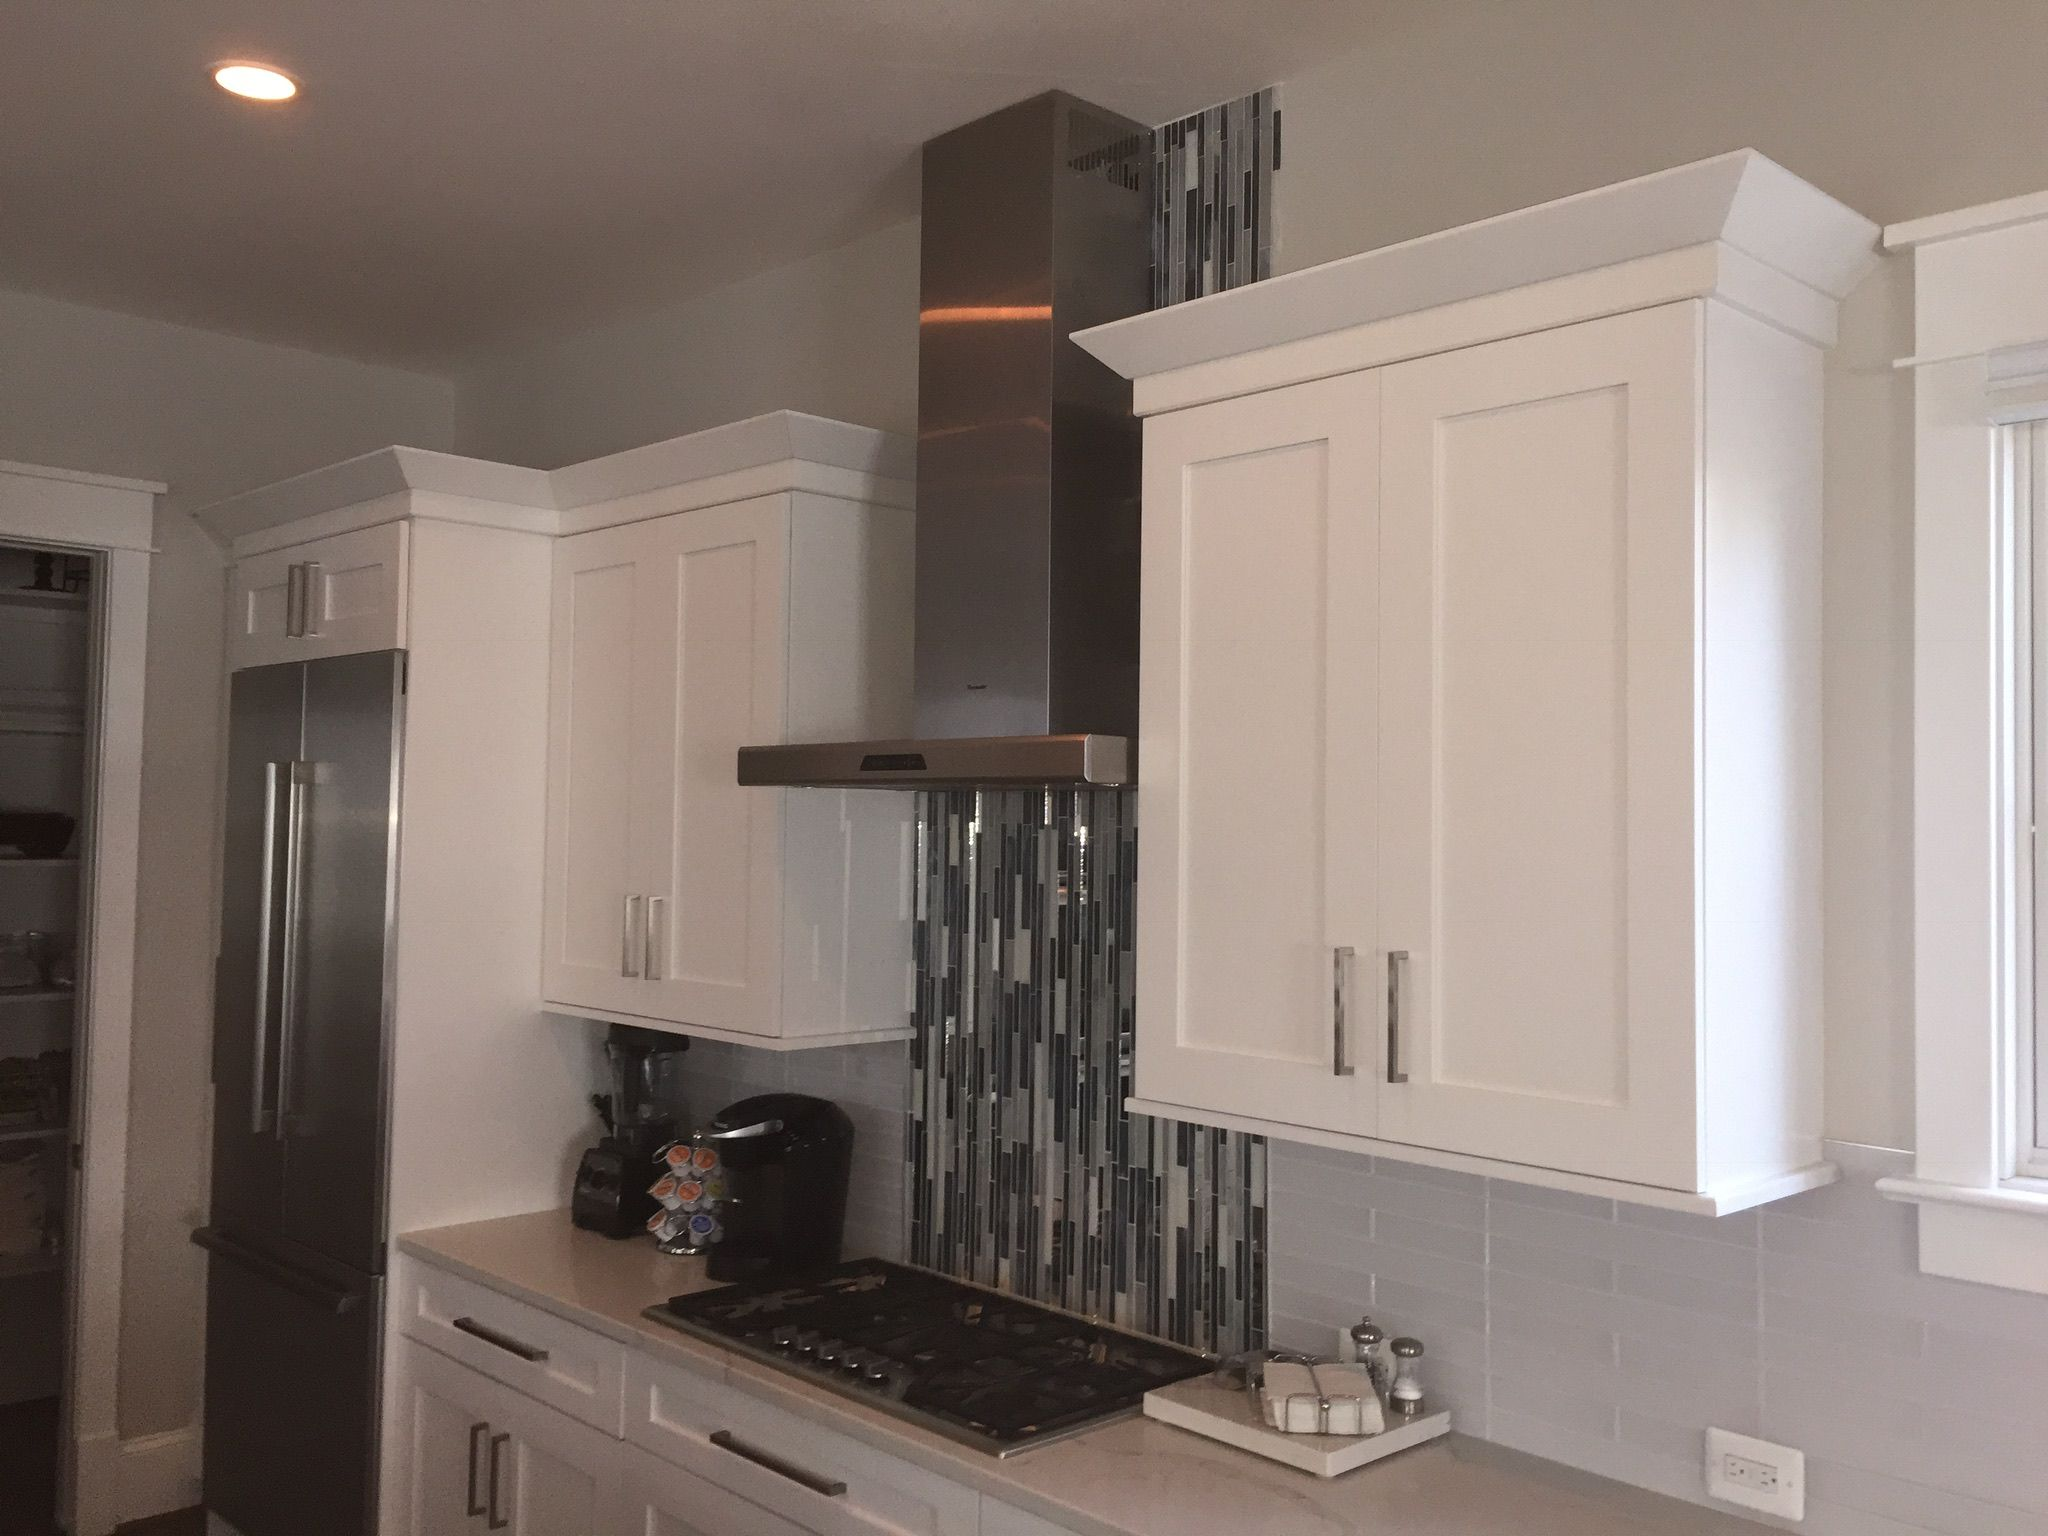 Pin By Carolyn Gilliland On Kitchen Home Decor Kitchen Kitchen Cabinets